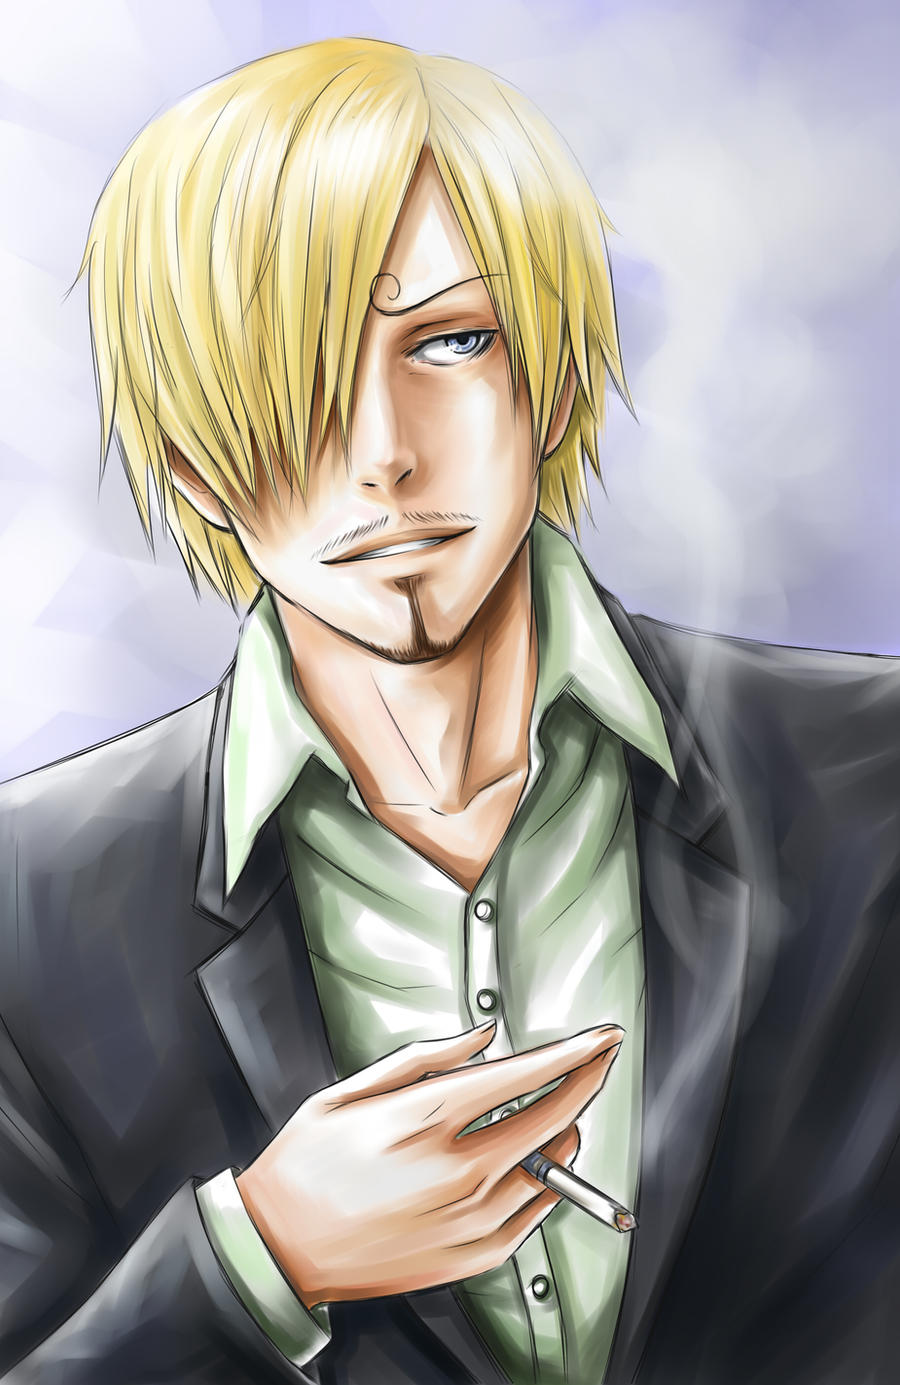 Sanji-san by LorenaMGrim